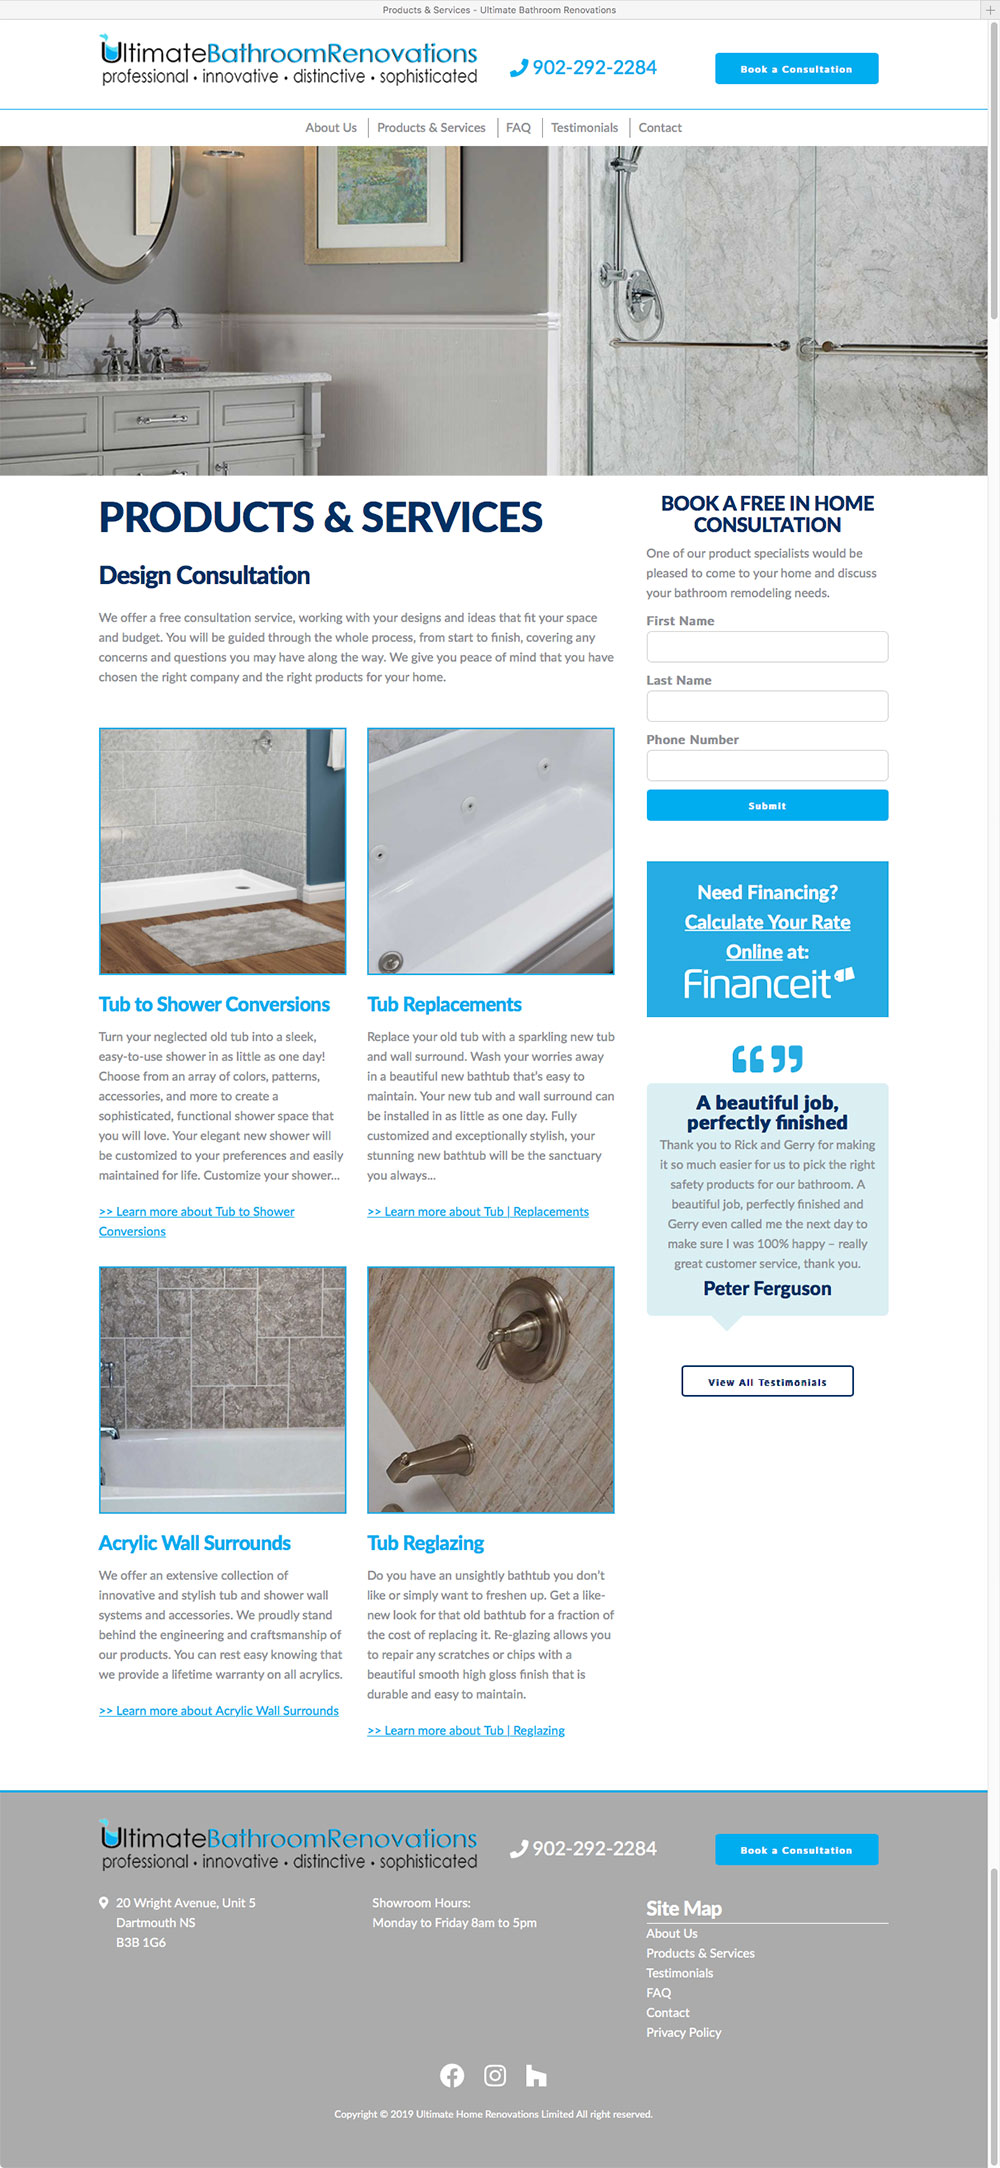 Ultimate Bathroom Renovations Services Page